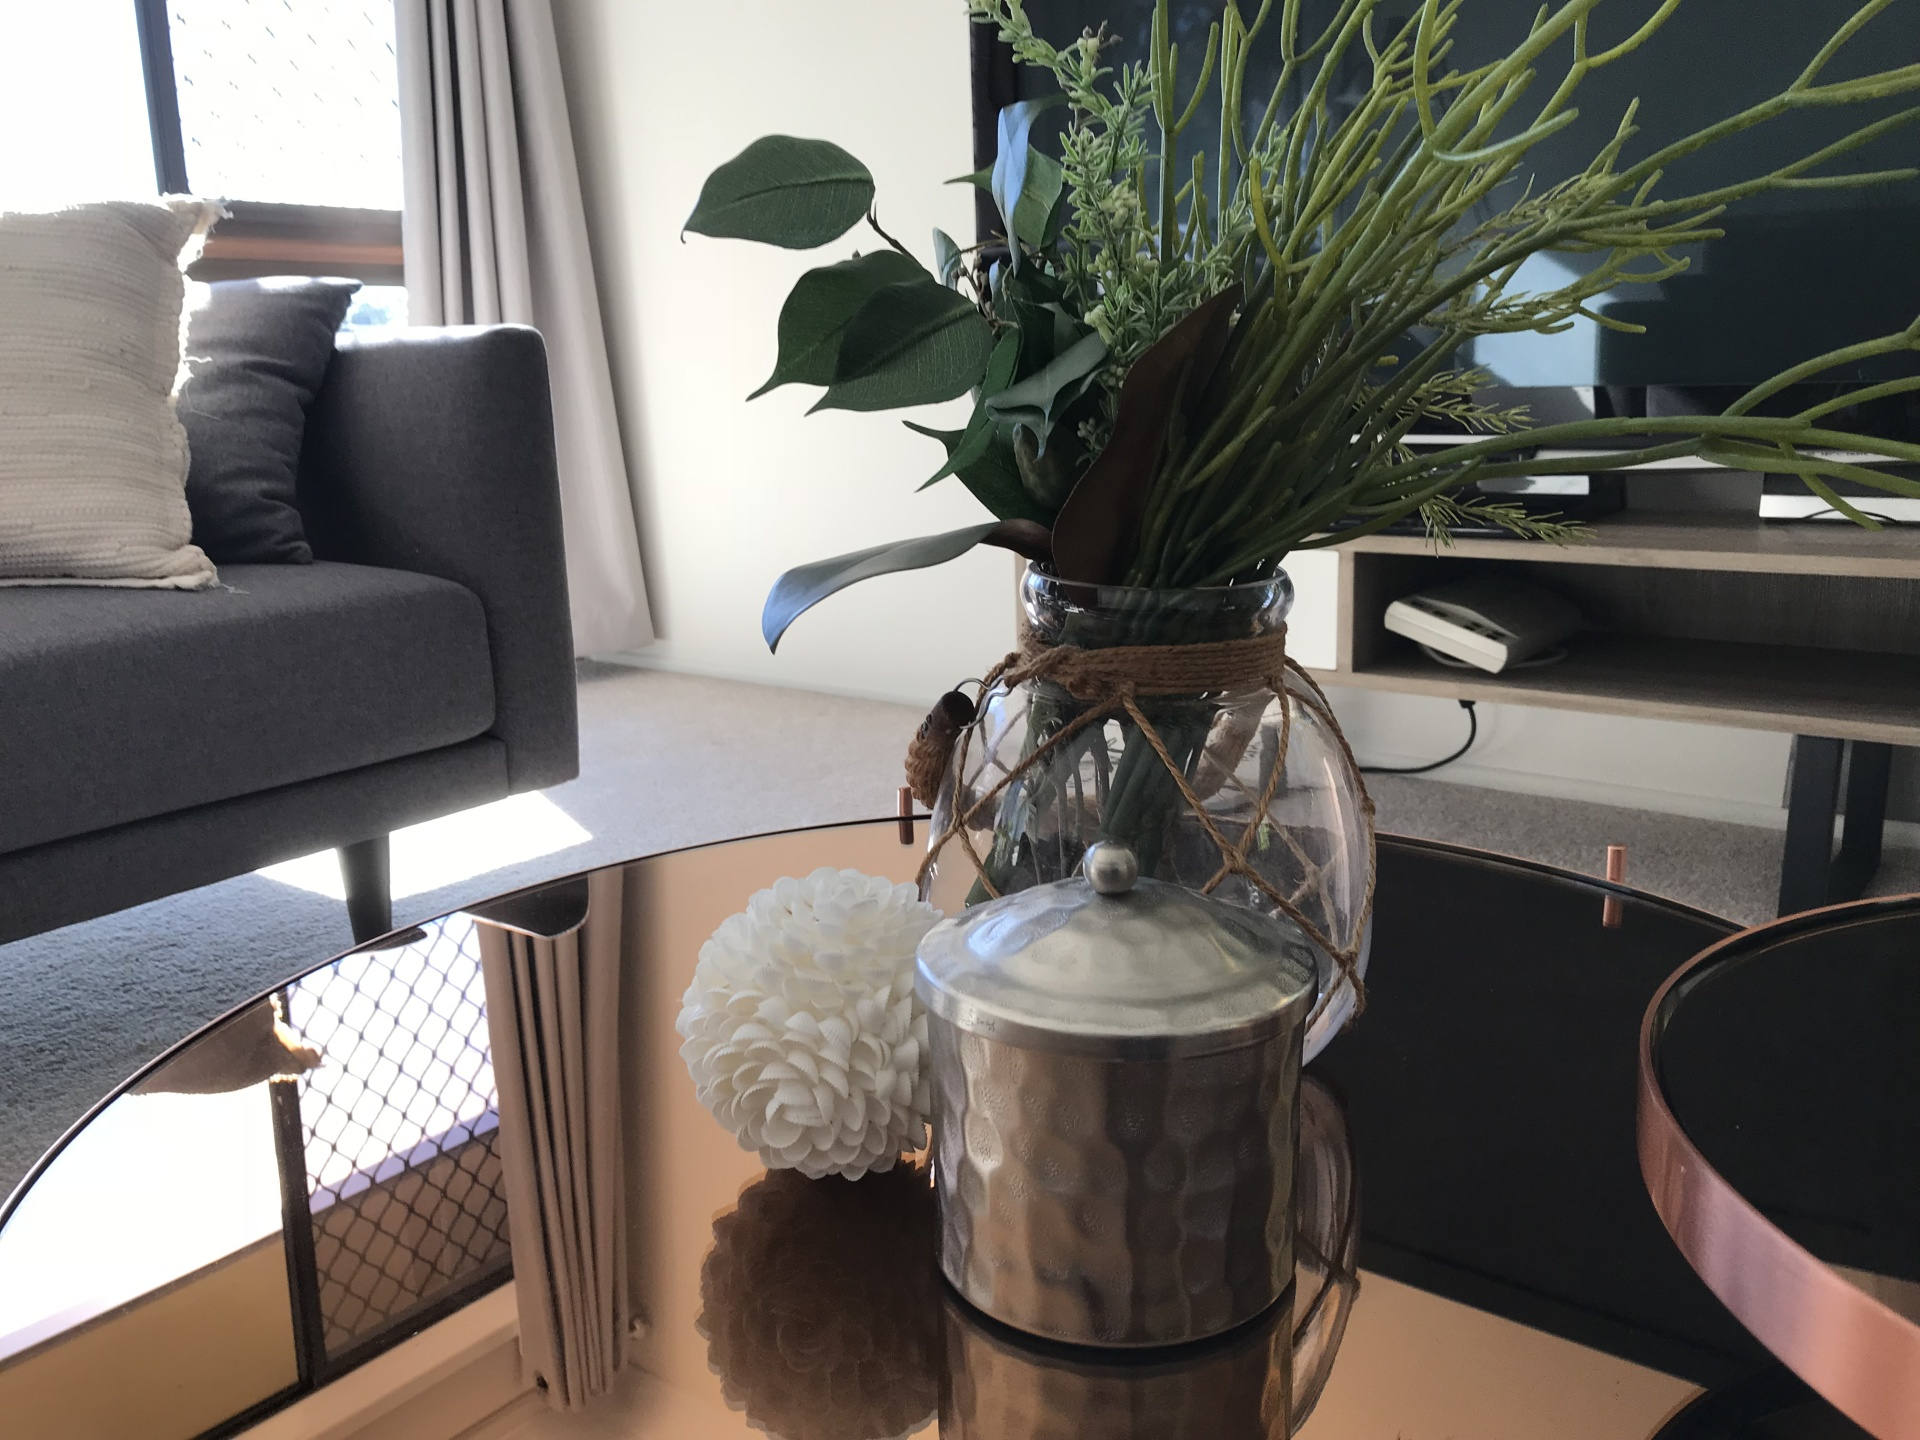 Home Staging, Home Styling, Property Staging, Property Styling, Ipswich, Ipswich Real Estate, Ipswich Home Staging